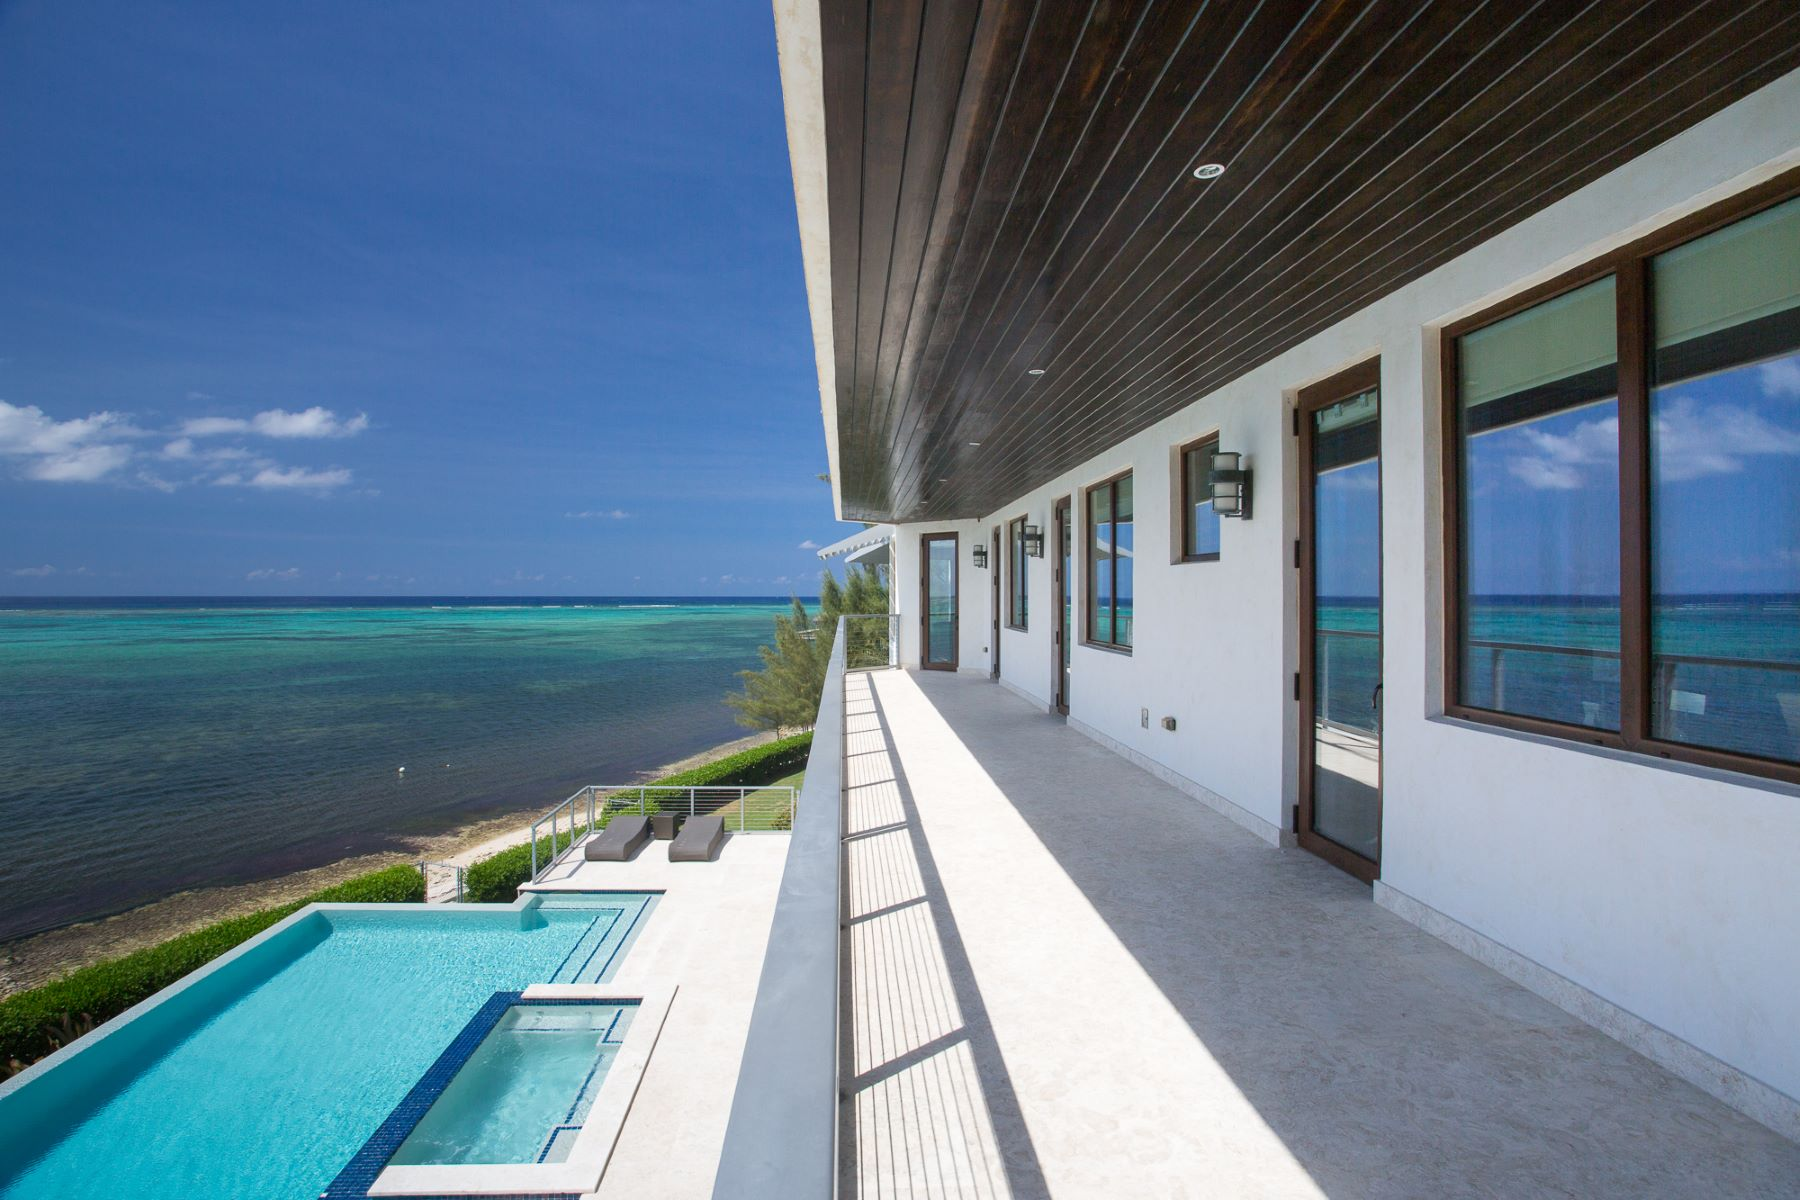 Additional photo for property listing at Barco a la Vista 800 South Sound Road South Sound,  CARIBBEAN Cayman Islands